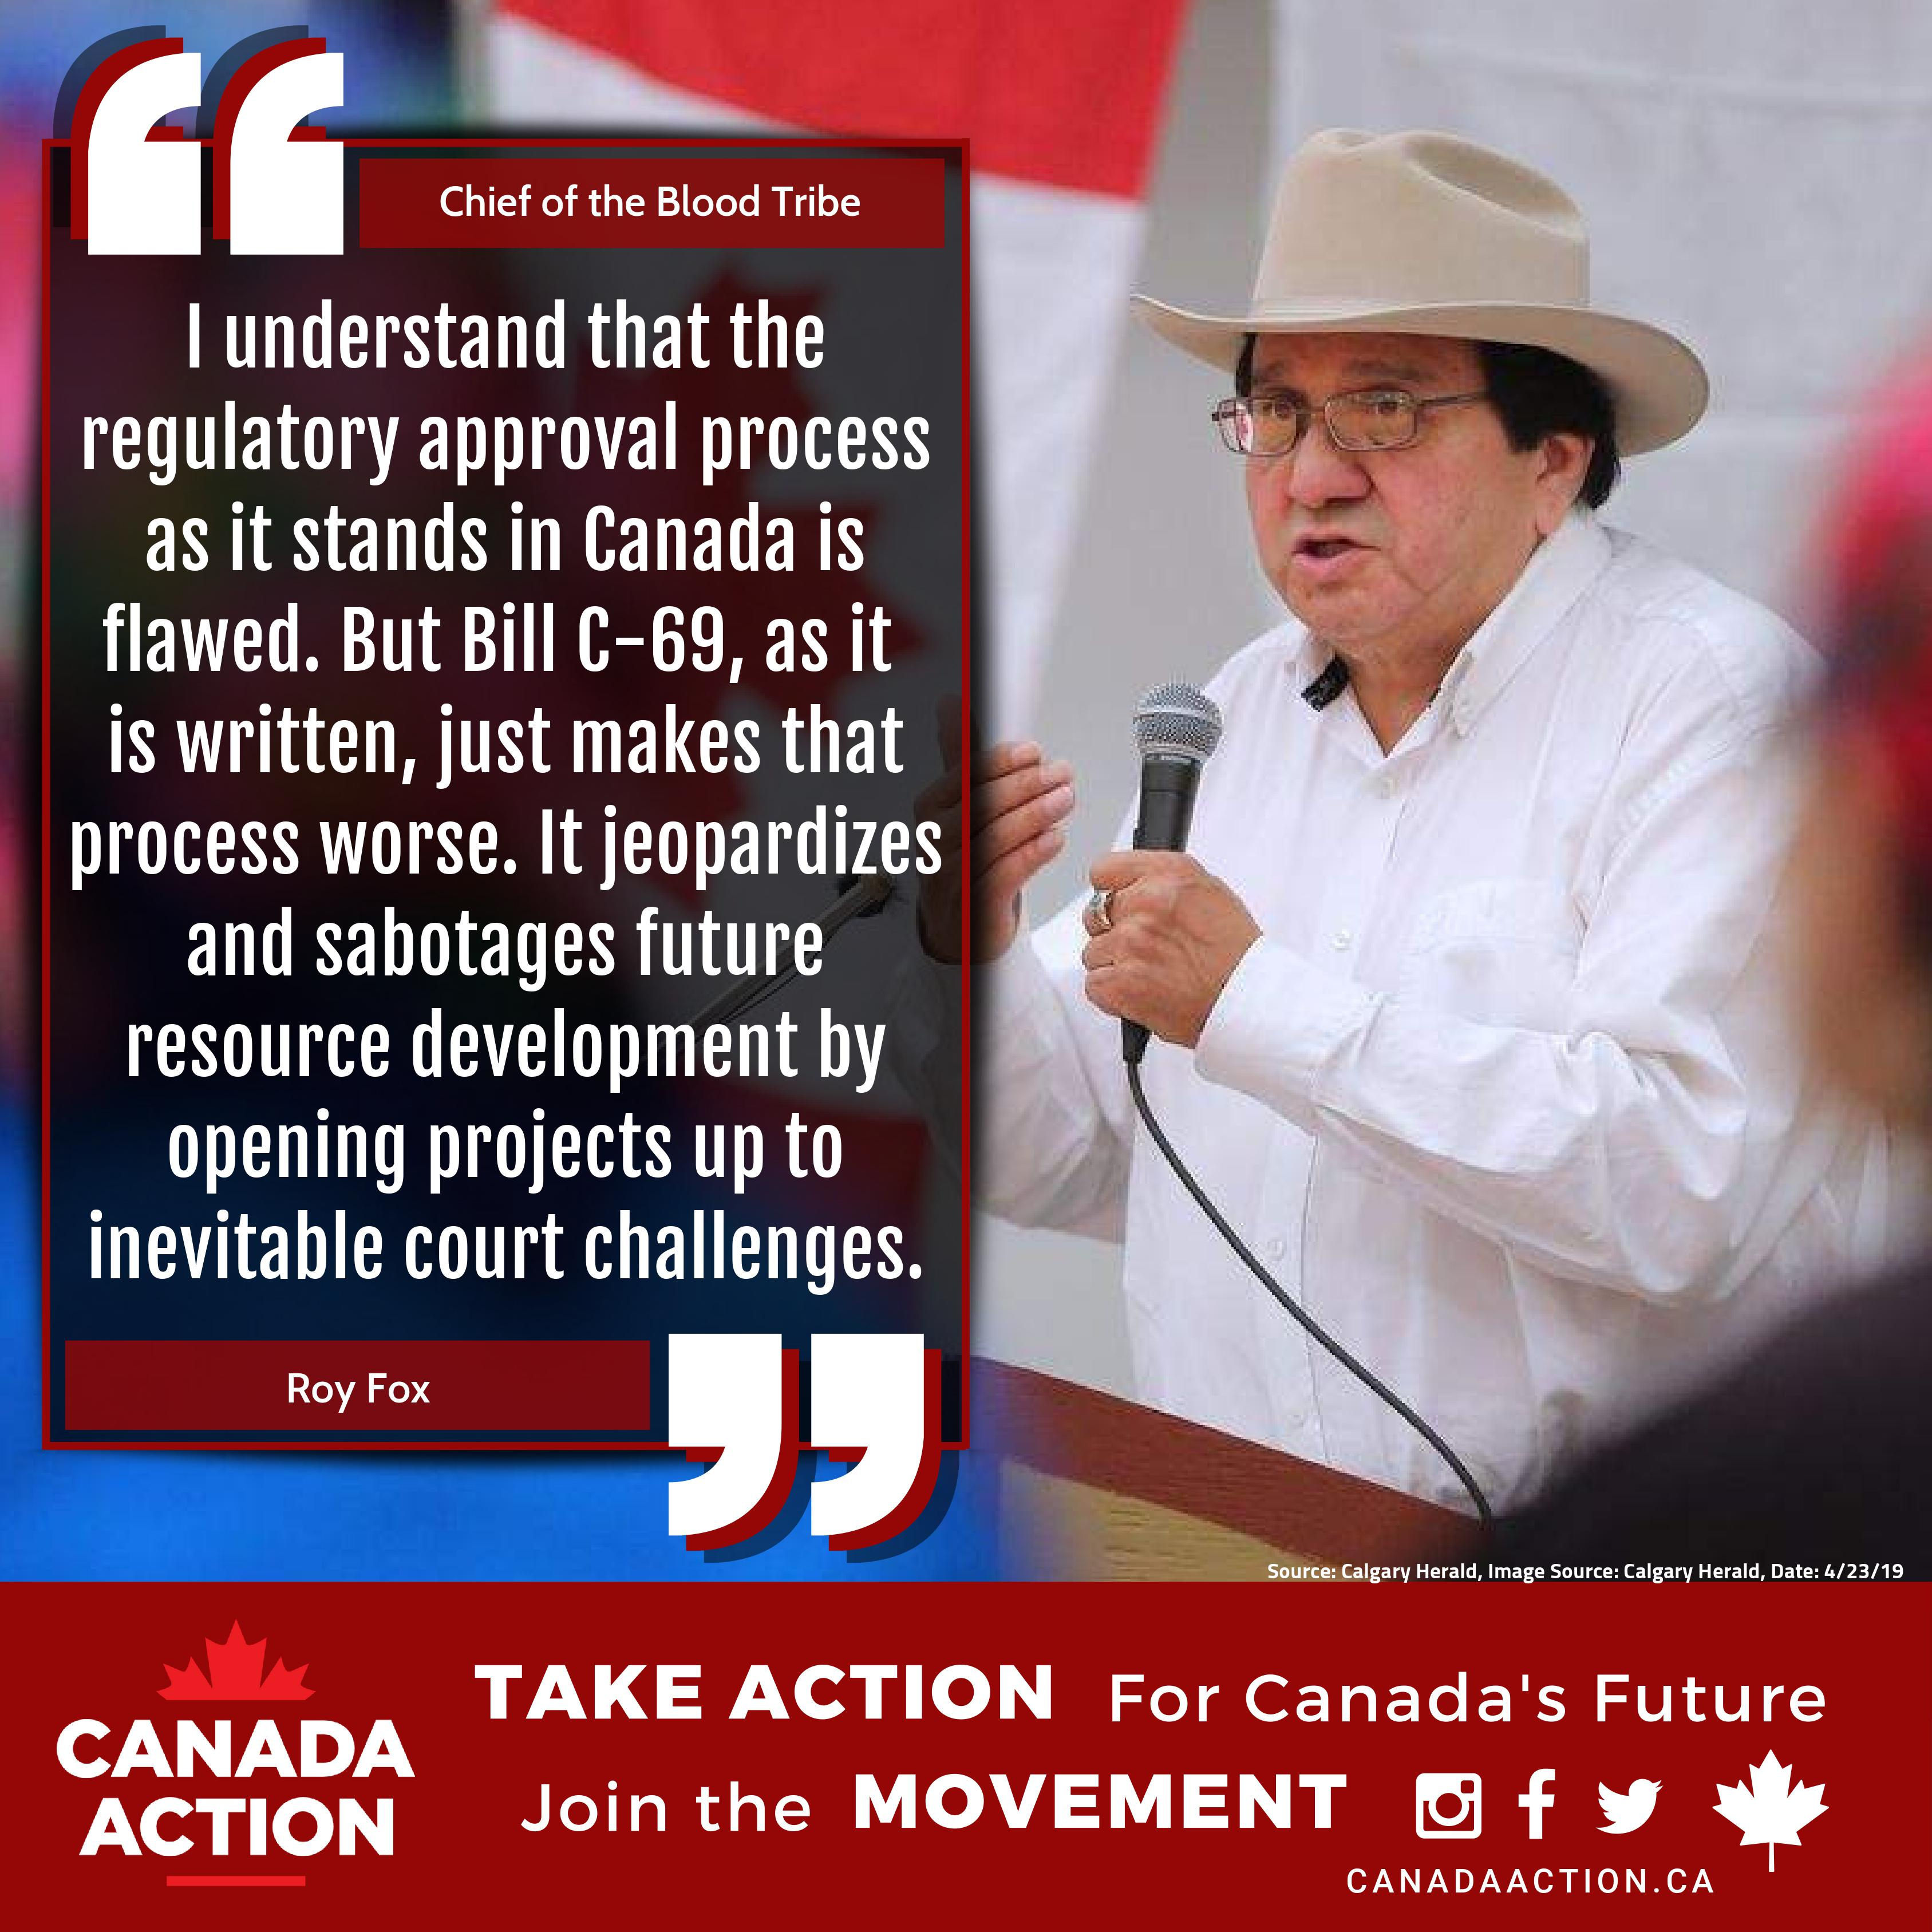 Chief Roy Fox - First Nations Against Bill C-69